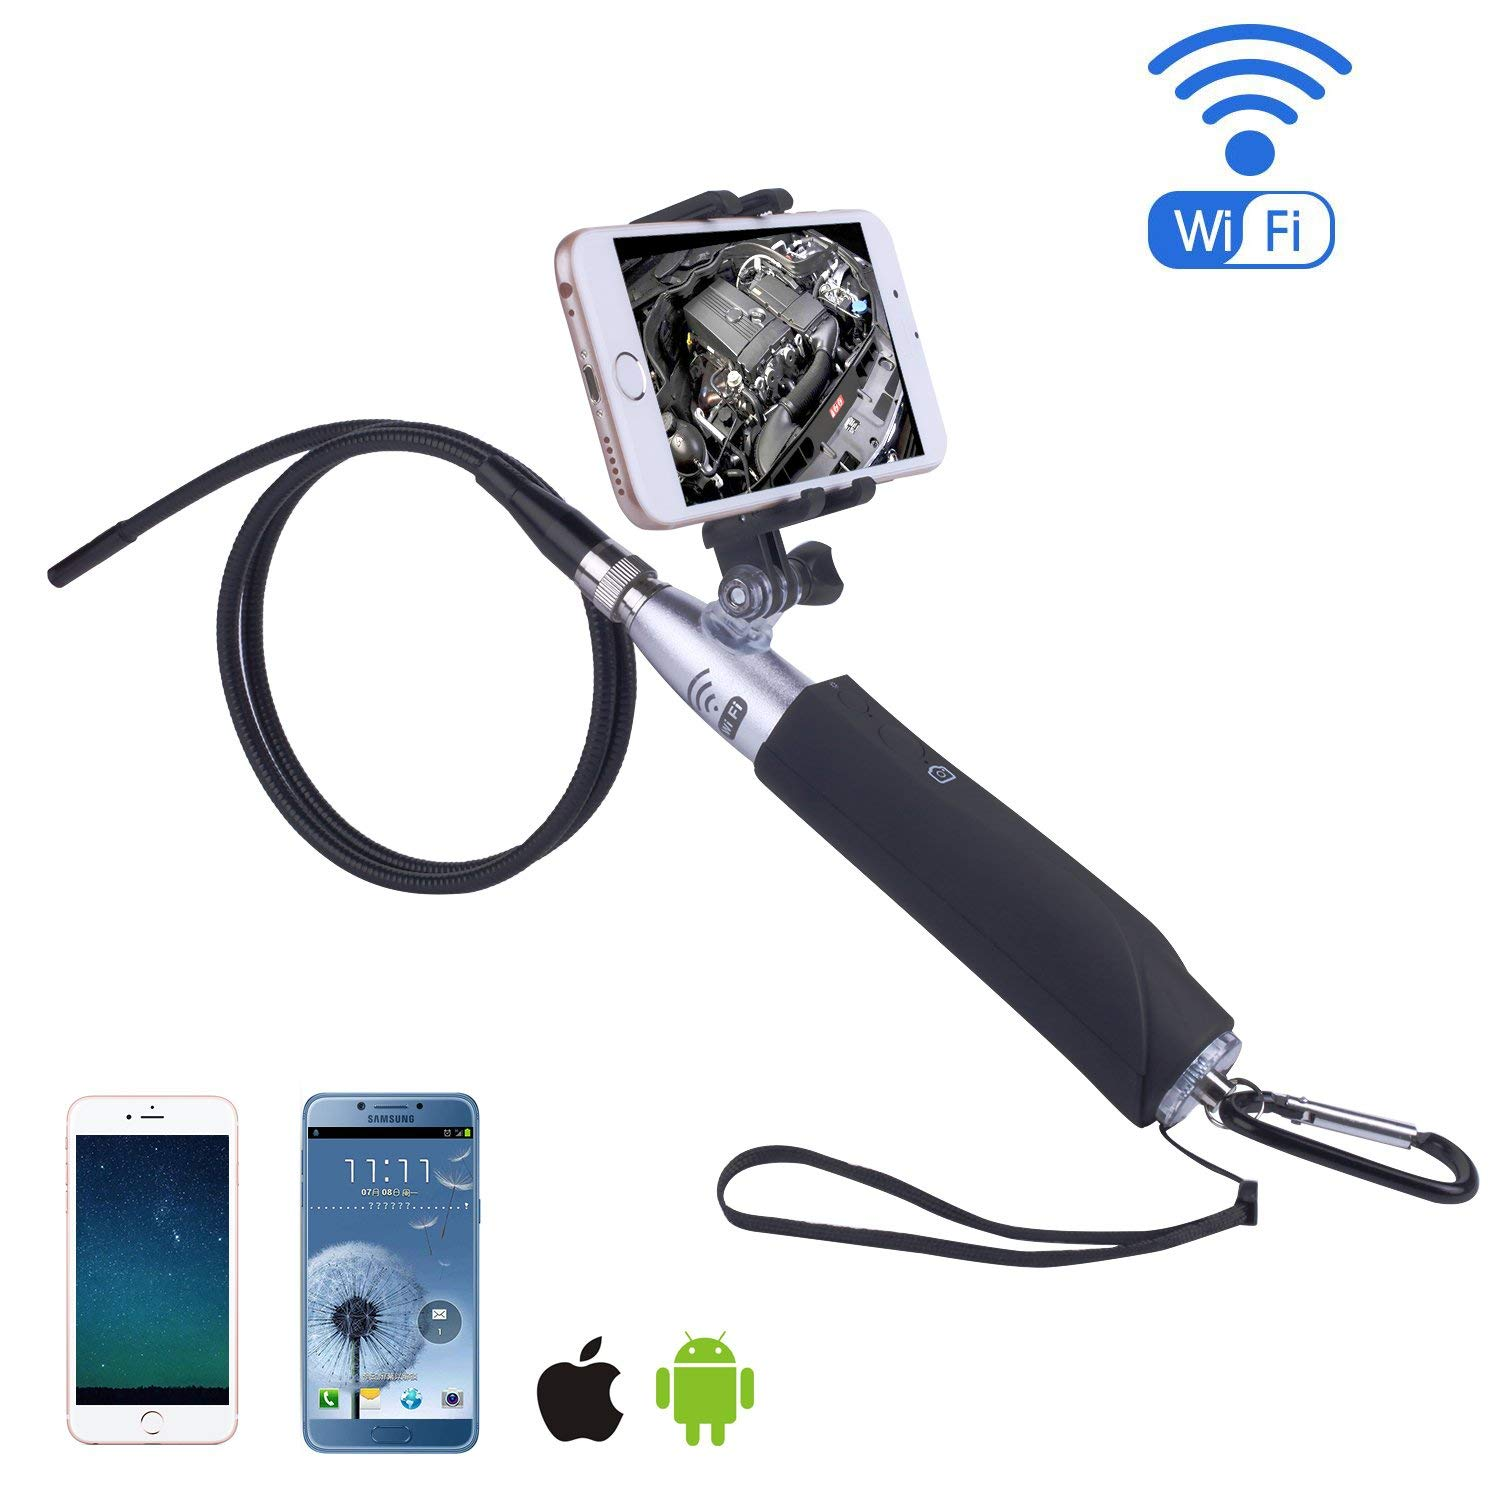 cbcaf74906f03 Get Quotations · Ilihome Handheld Wifi Endoscope Camera